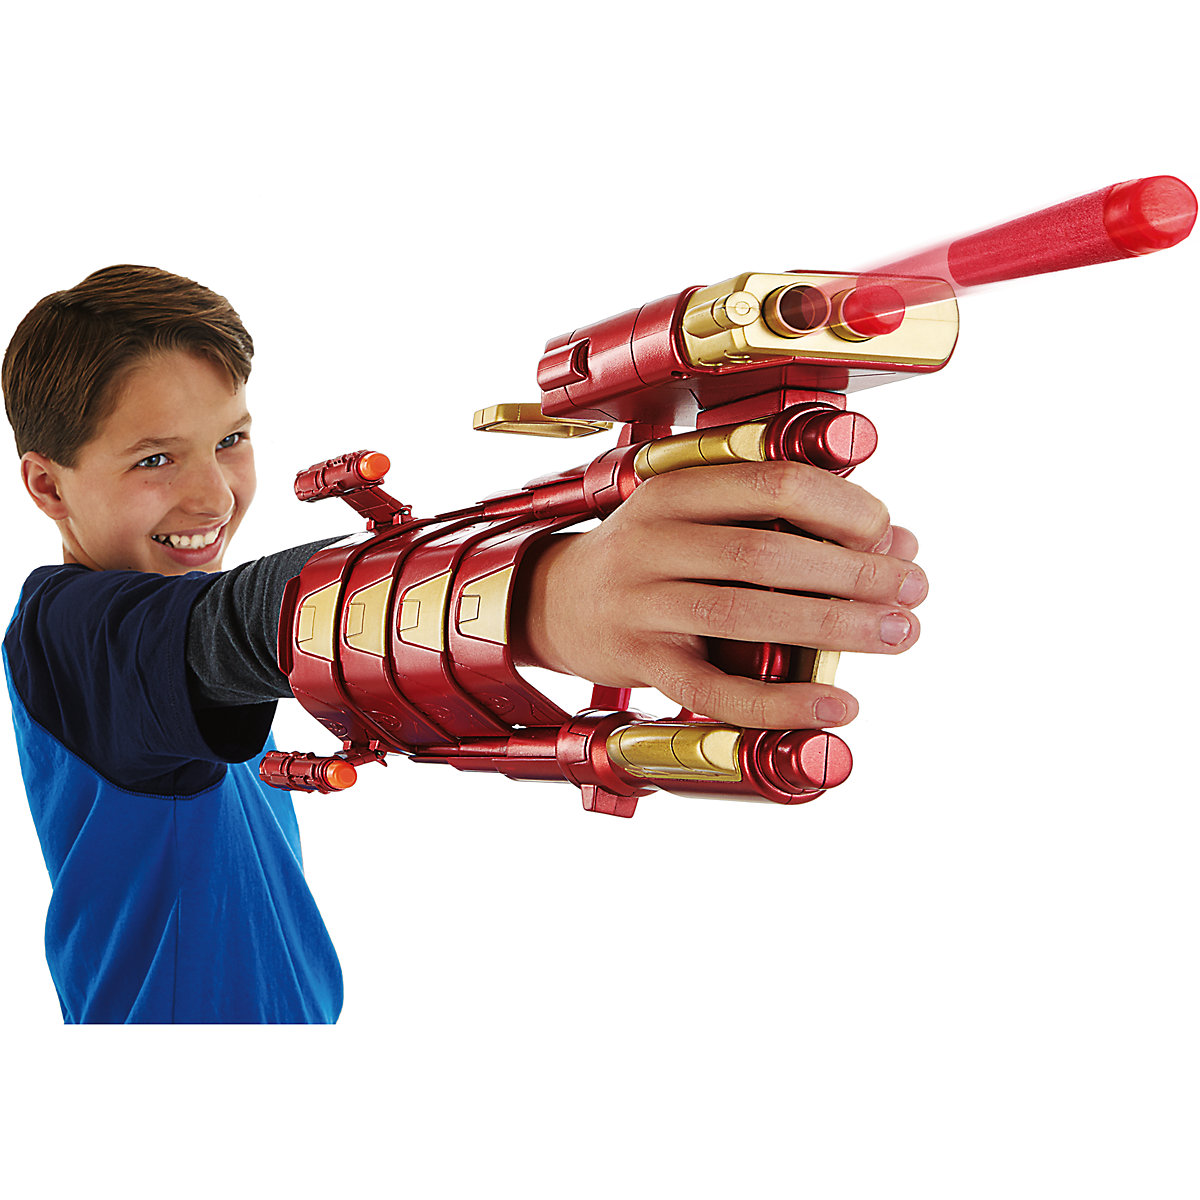 Hasbro  Costume Props 5160416 playsets childrens costumes aprilpromo Avengers Marvel Iron Man avengers 2 age of ultron iron man mark 43 pvc action figure collectible model toy 9 23cm kt056